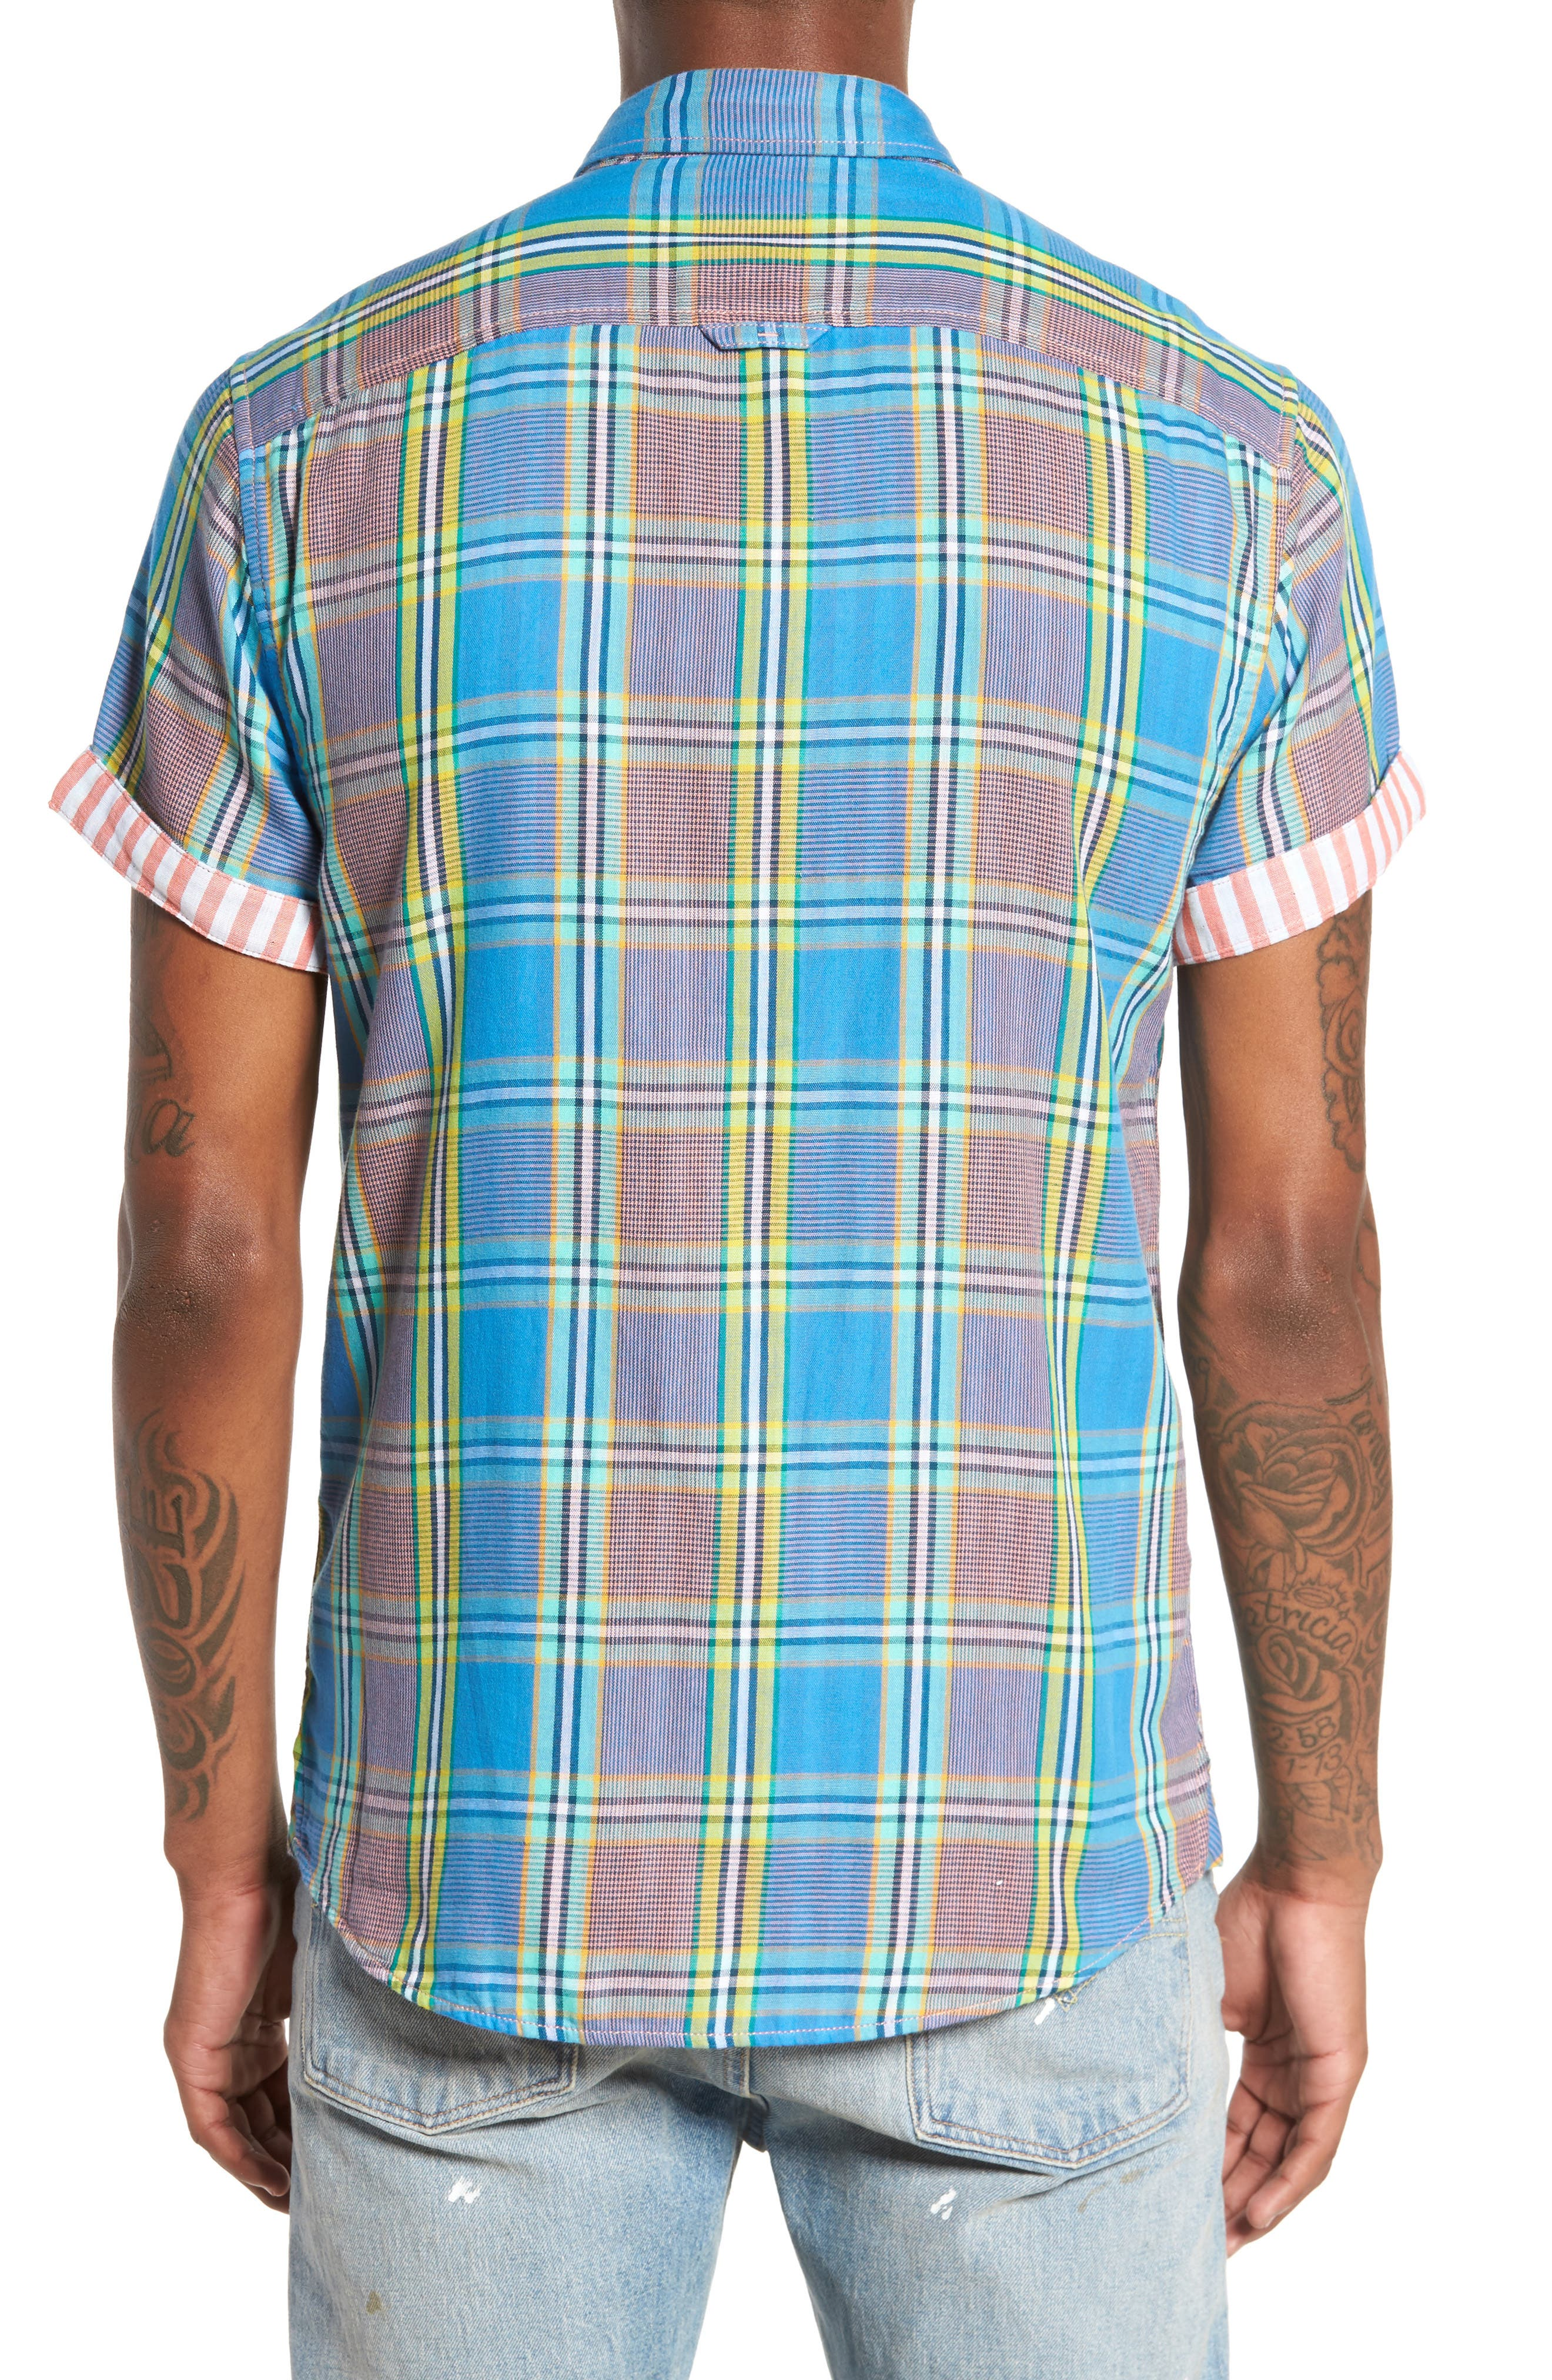 Short Sleeve Plaid Duofold Shirt,                             Alternate thumbnail 2, color,                             Blue Green Plaid Duo Fold